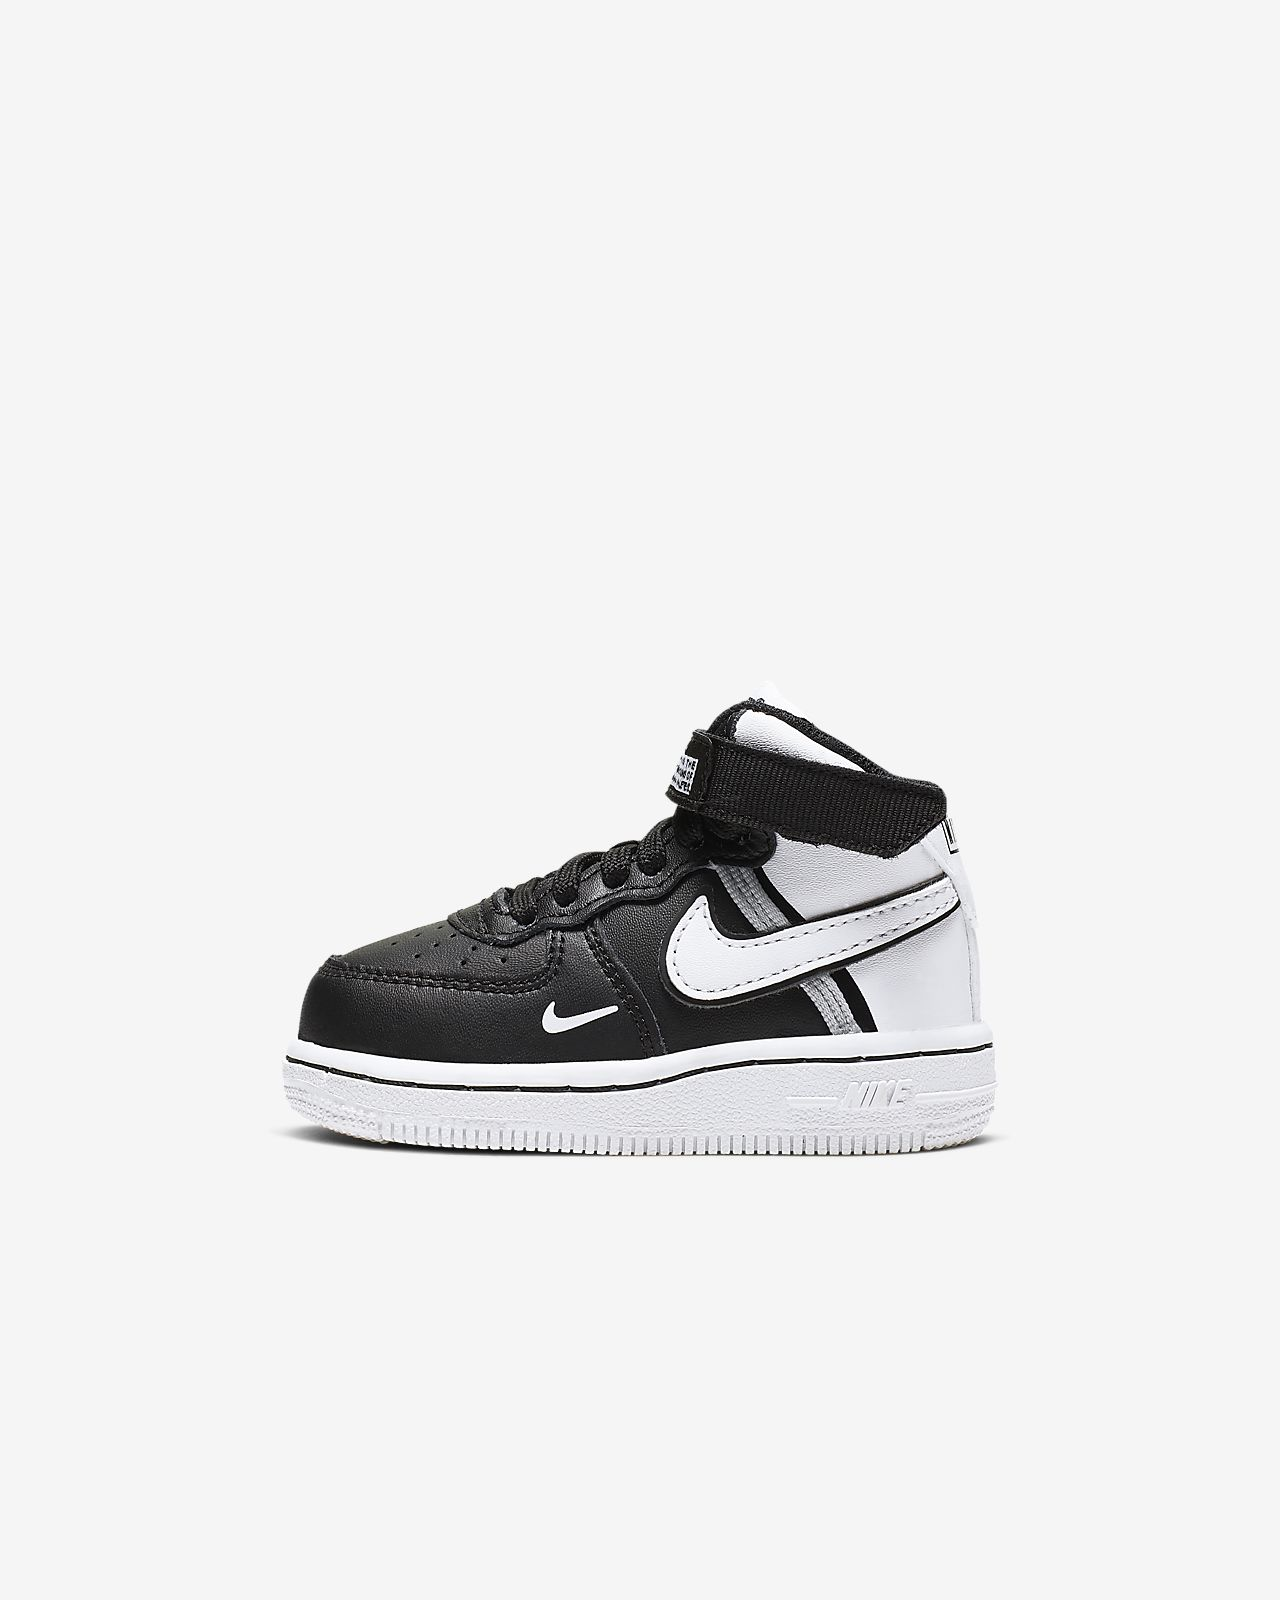 Nike Force 1 Mid LV8 2 Baby/Toddler Shoe